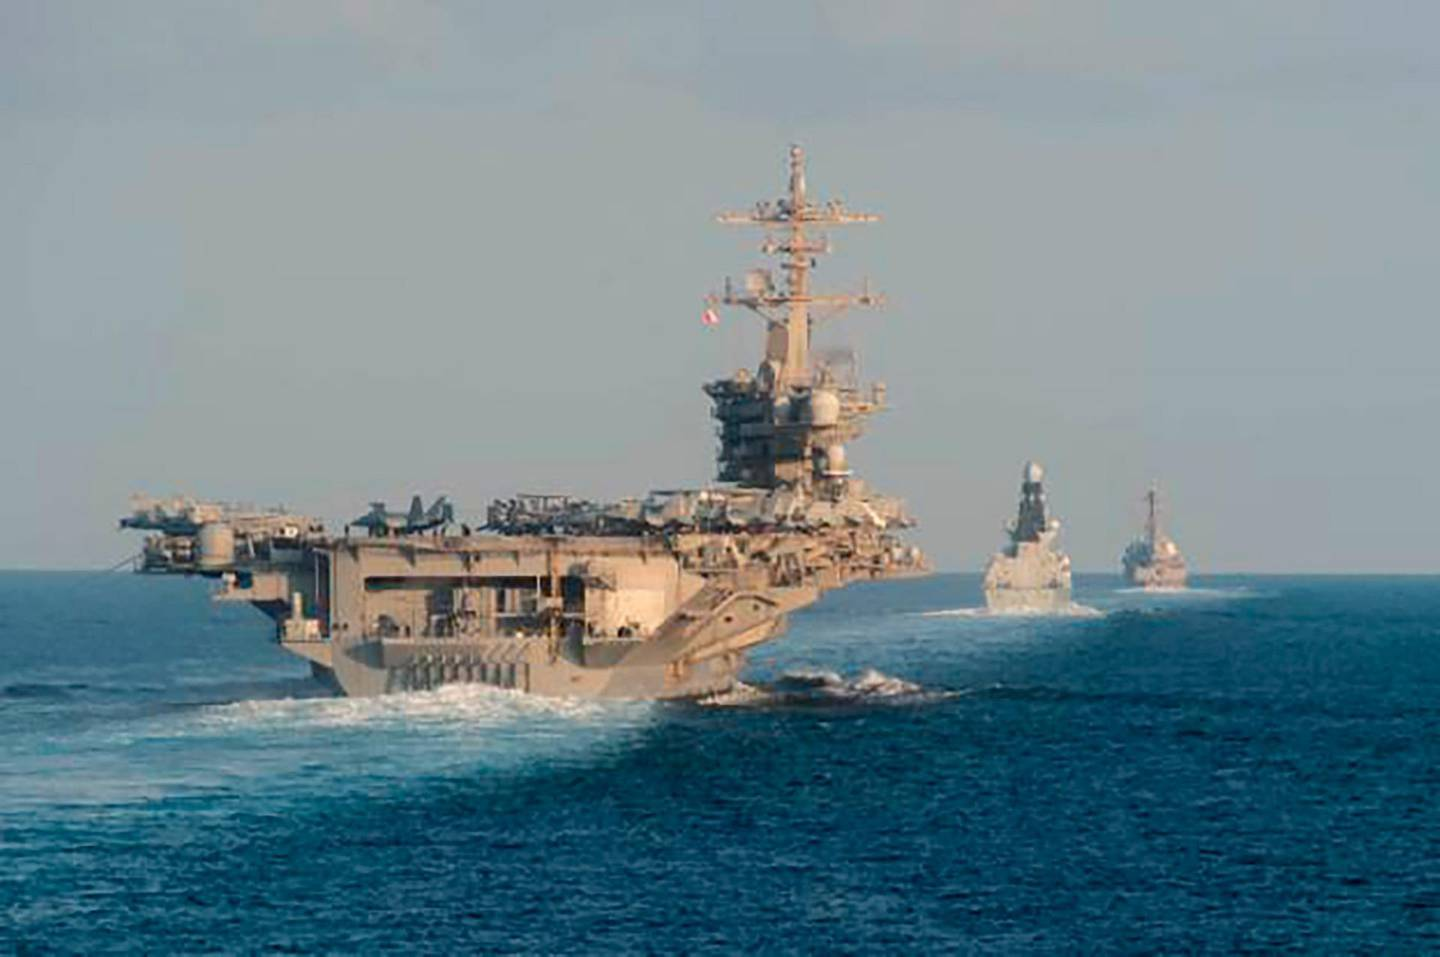 In this Tuesday, Nov. 19, 2019, photo made available by U.S. Navy, the aircraft carrier USS Abraham Lincoln, left, the air-defense destroyer HMS Defender and the guided-missile destroyer USS Farragut transit the Strait of Hormuz with the guided-missile cruiser USS Leyte Gulf. The U.S. aircraft carrier Abraham Lincoln sent to the Mideast in May over tensions with Iran transited the narrow Strait of Hormuz for the first time on Tuesday. The ship previously had been in the Arabian Sea outside of the Persian Gulf. (Mass Communication Specialist 3rd Class Zachary Pearson/U.S. Navy via AP)